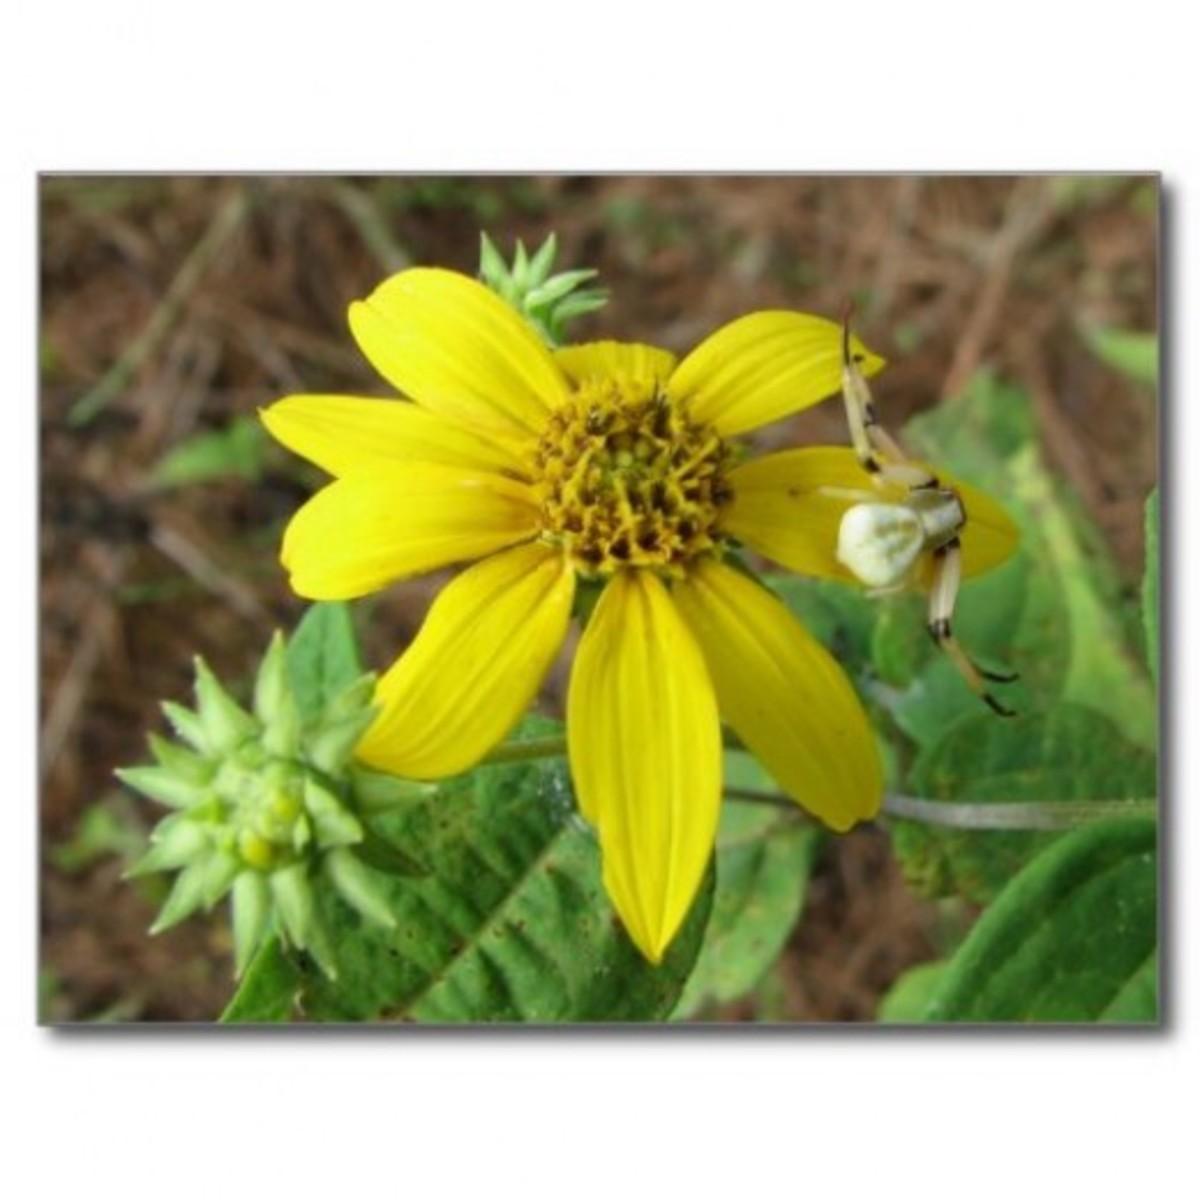 This type of crab spider lives on a stand of woodland sunflowers.